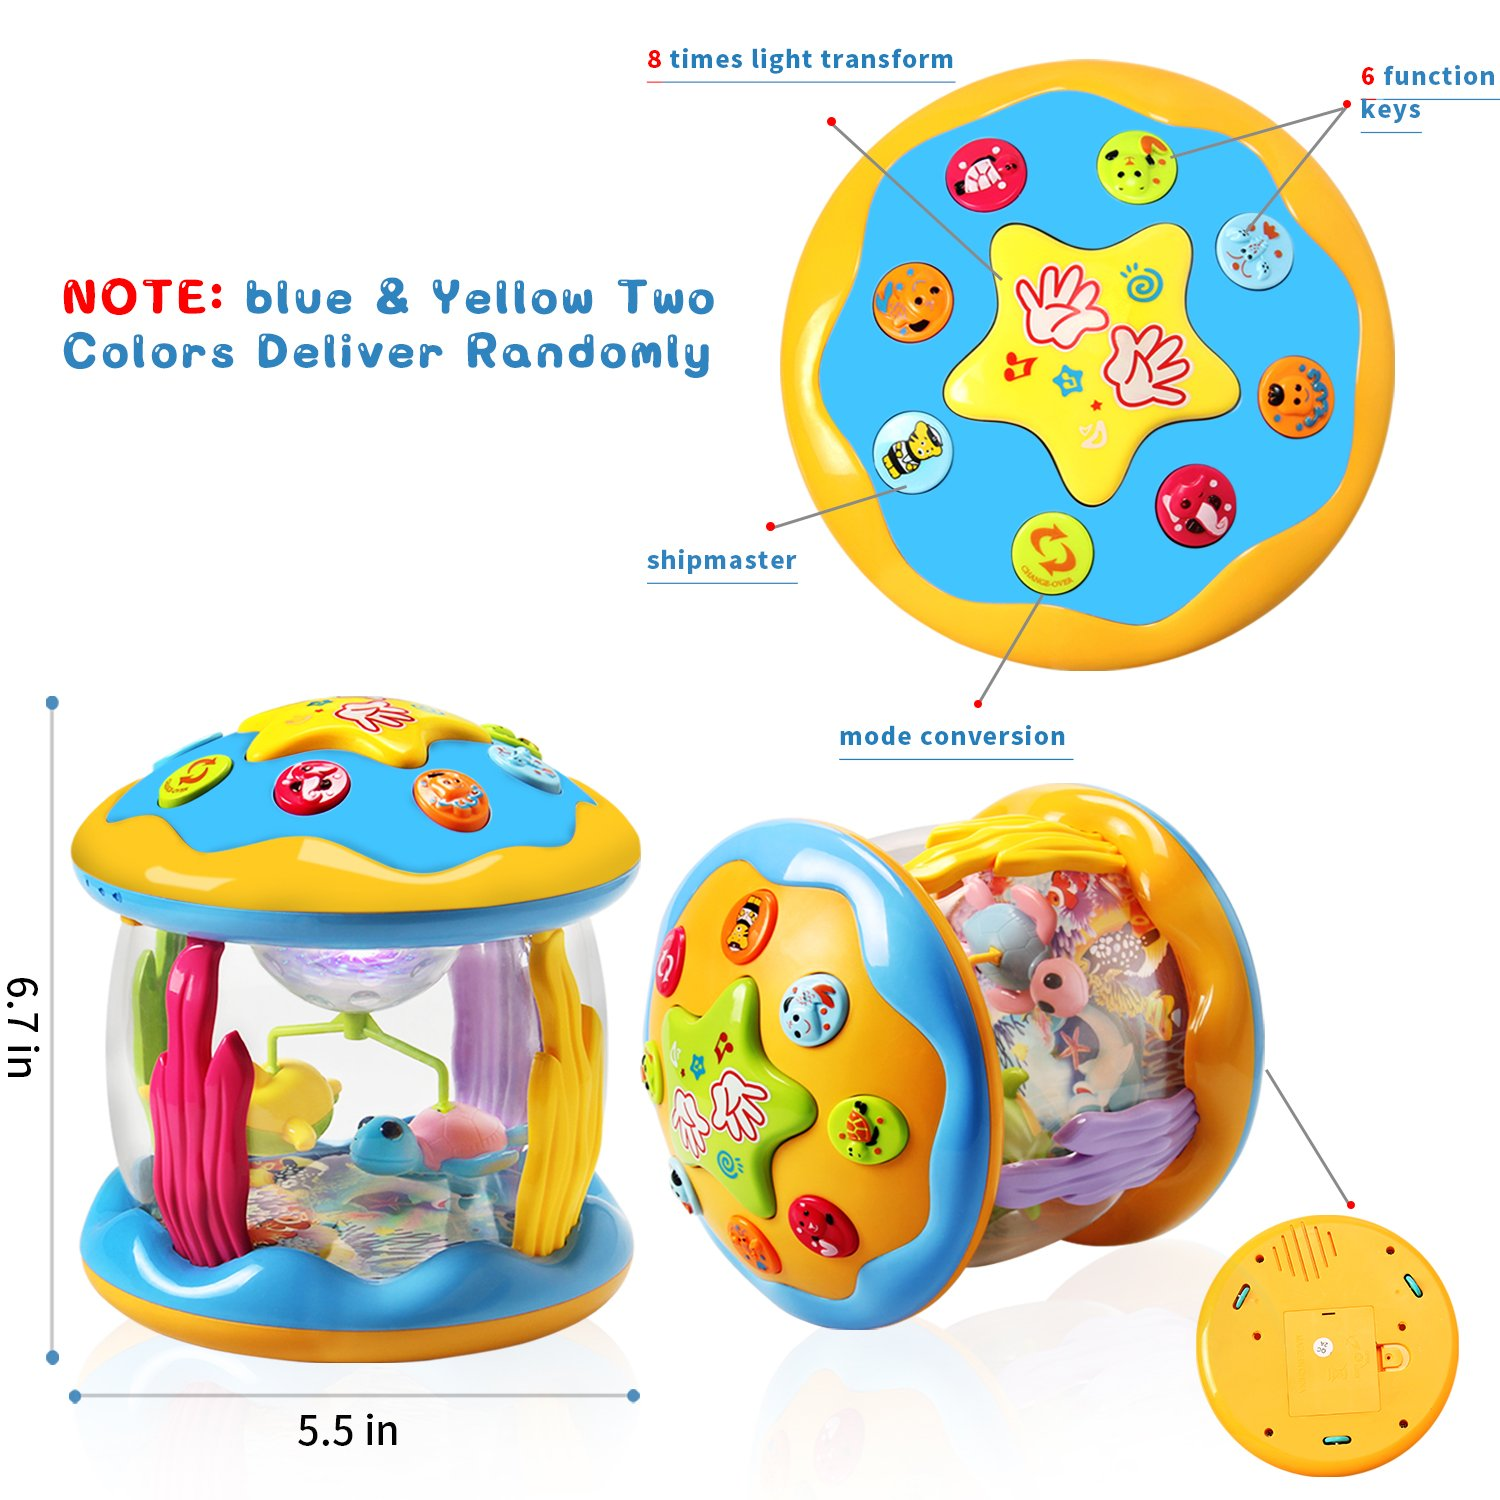 HOMOFY Baby Toys Ocean Park Rotating Projector,Various Pacify Music & Light,Super Fun,Early Educational Toys for 1 2 3 Year Girls and Boys Kids or Toddlers(BEST GIFTS) by HOMOFY (Image #6)